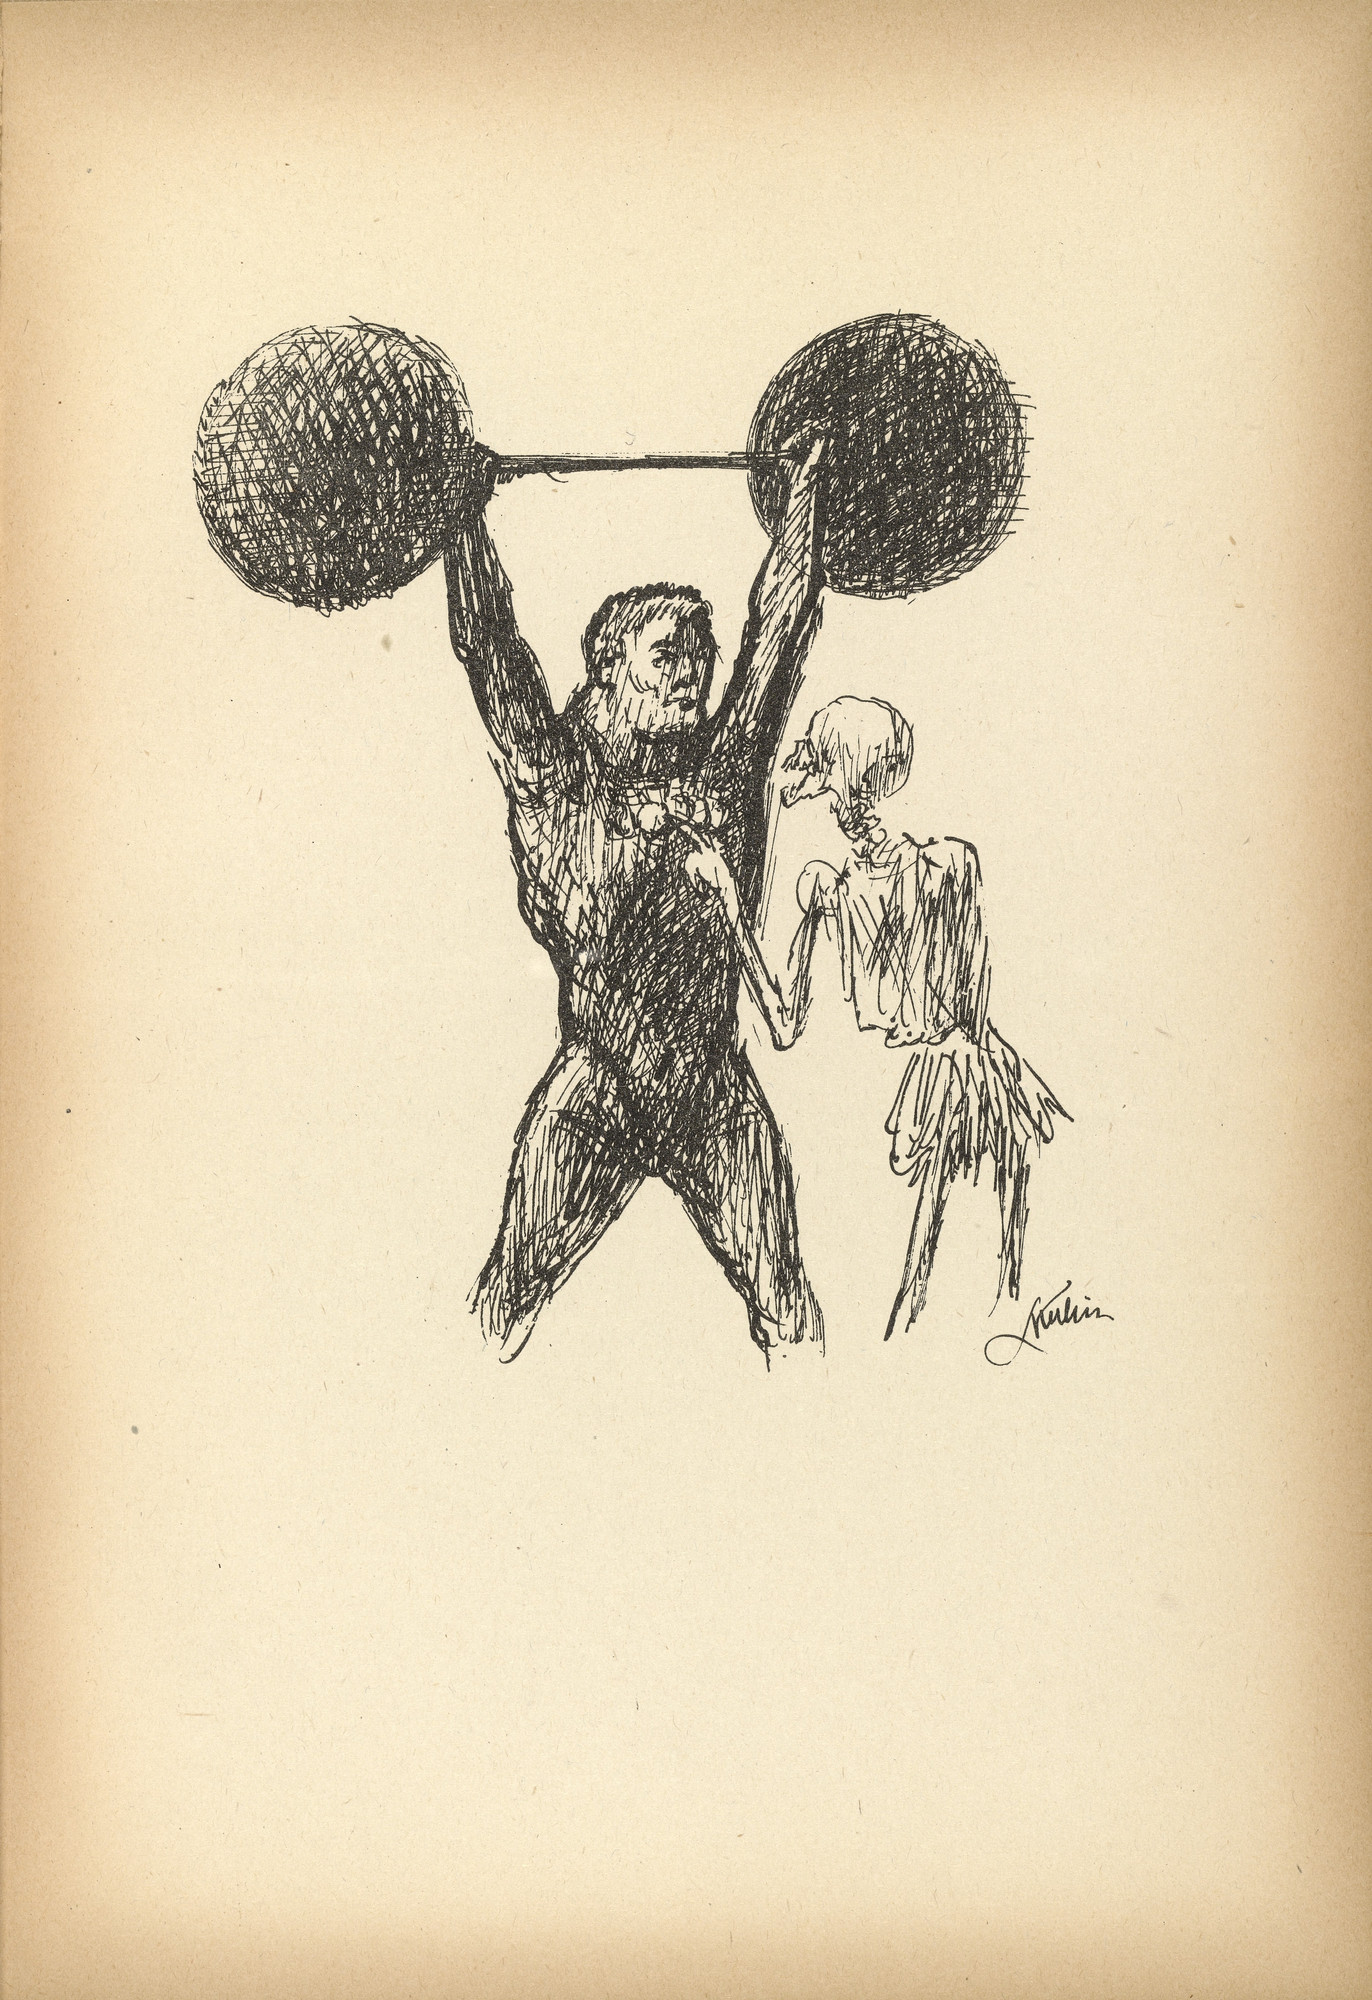 Alfred Kubin. Athlete (Athlet) from Ein neuer Totentanz (A New Dance of Death). 1947 (reproduced drawing executed 1938)